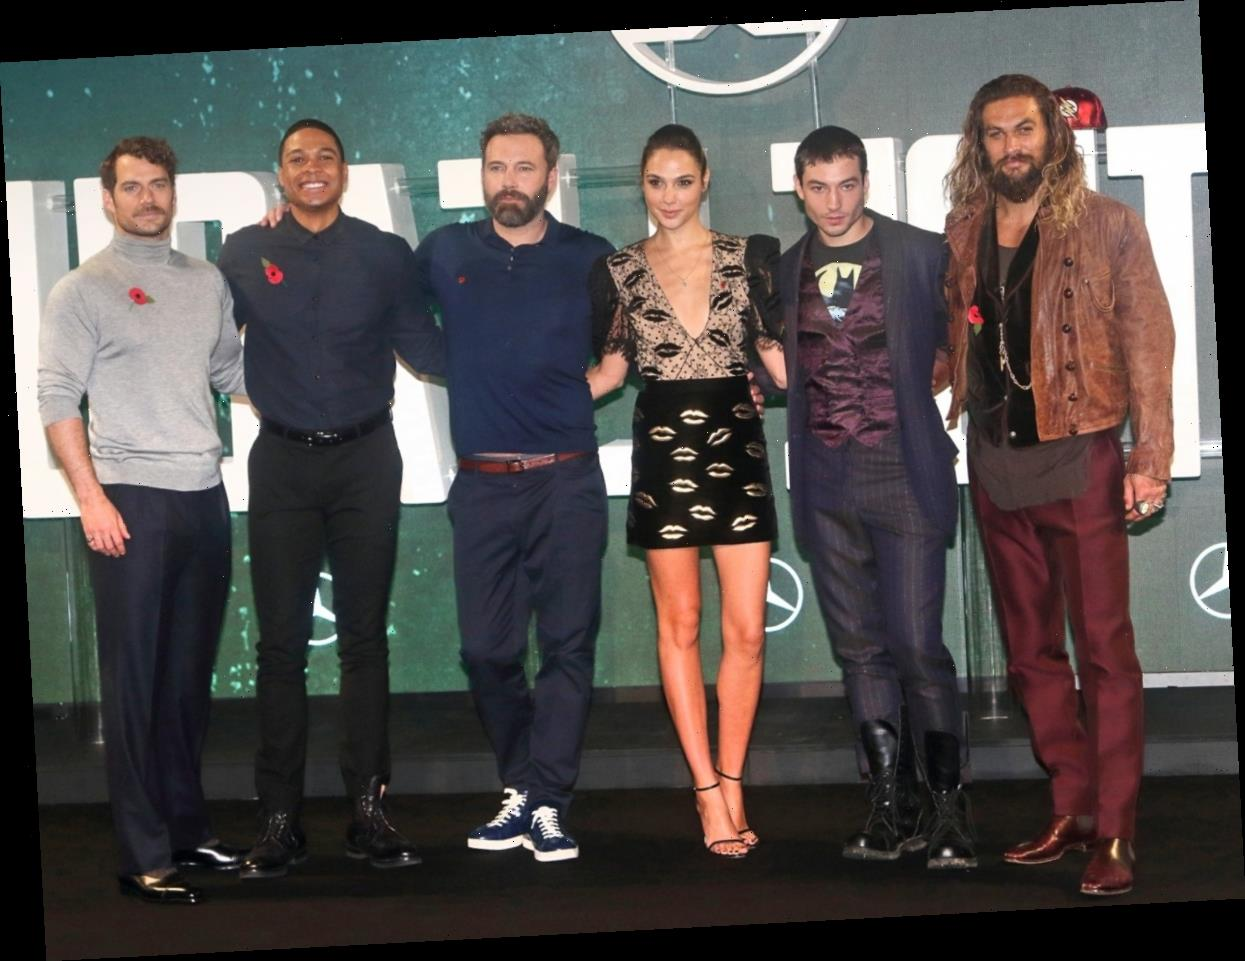 Joss Whedon threatened to make Gal Gadot 'look incredibly stupid' in Justice League